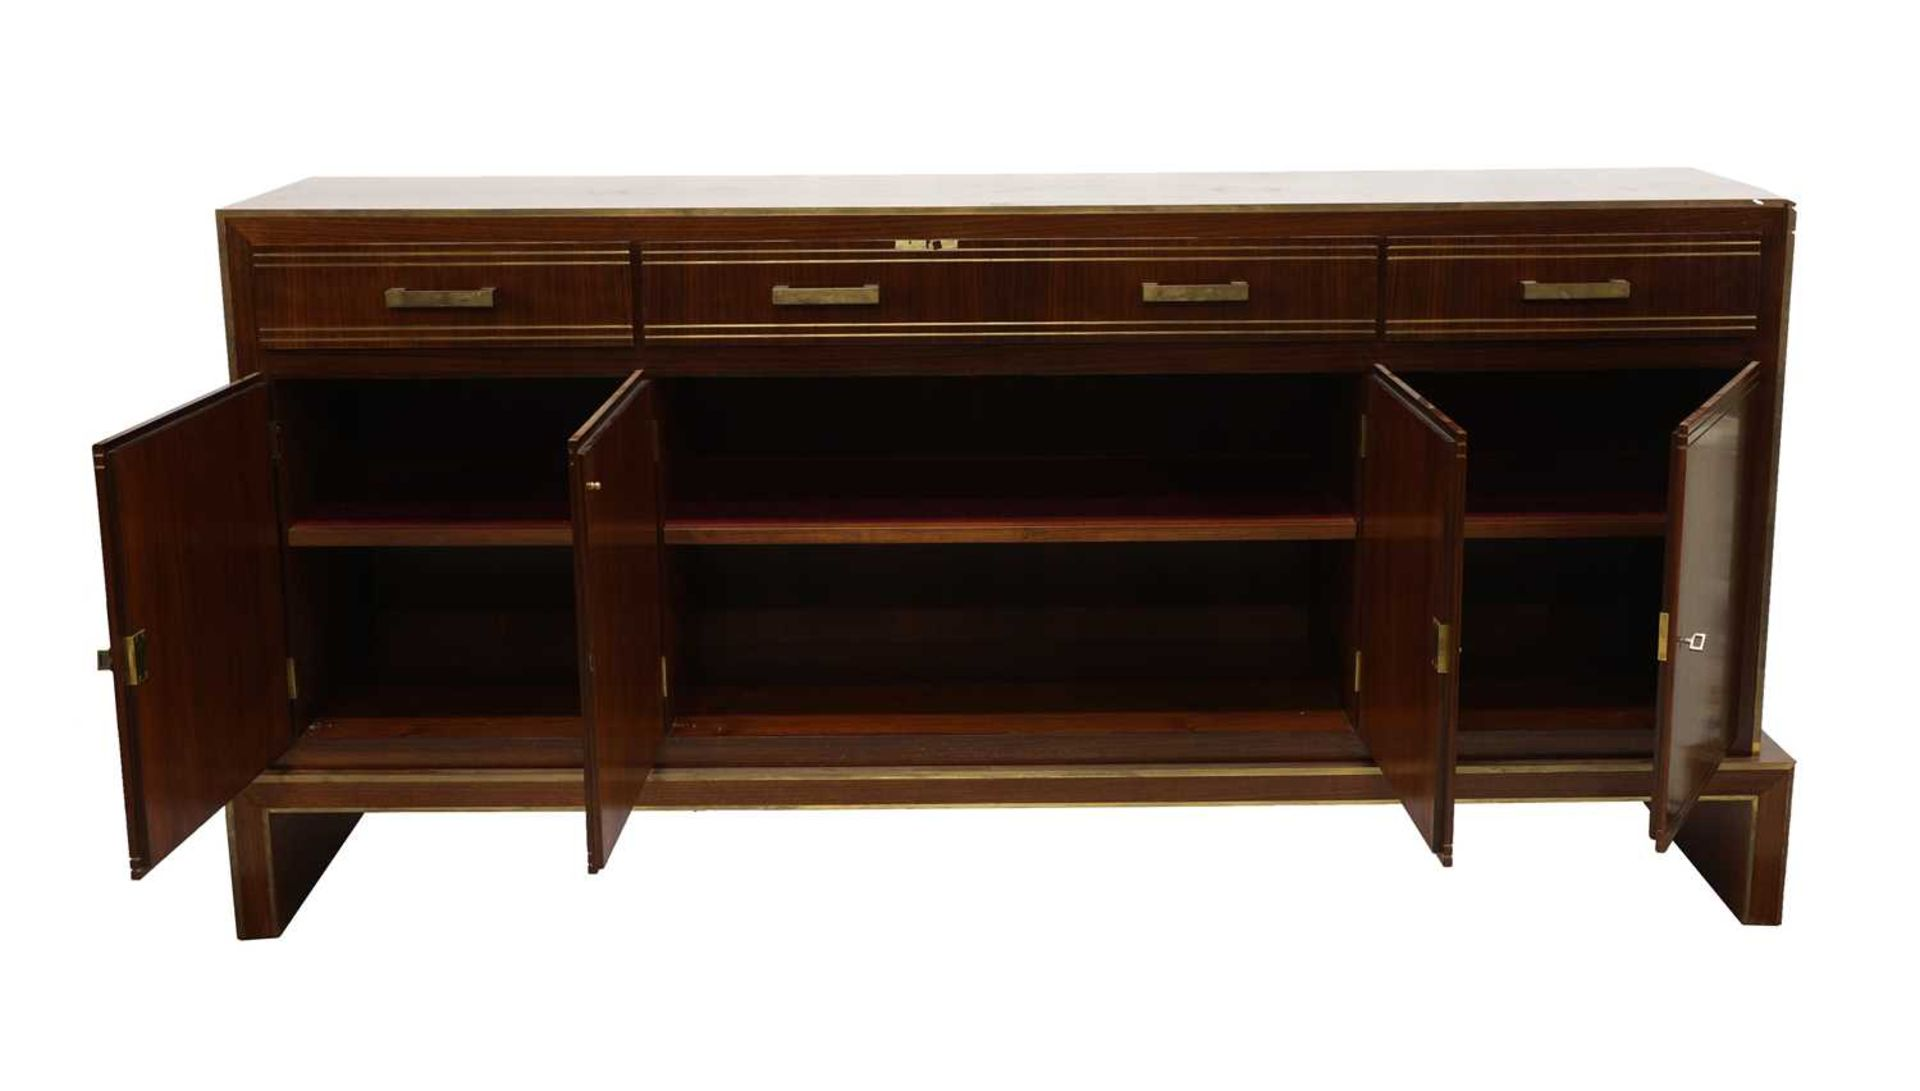 An Indian rosewood dining suite, - Image 5 of 10